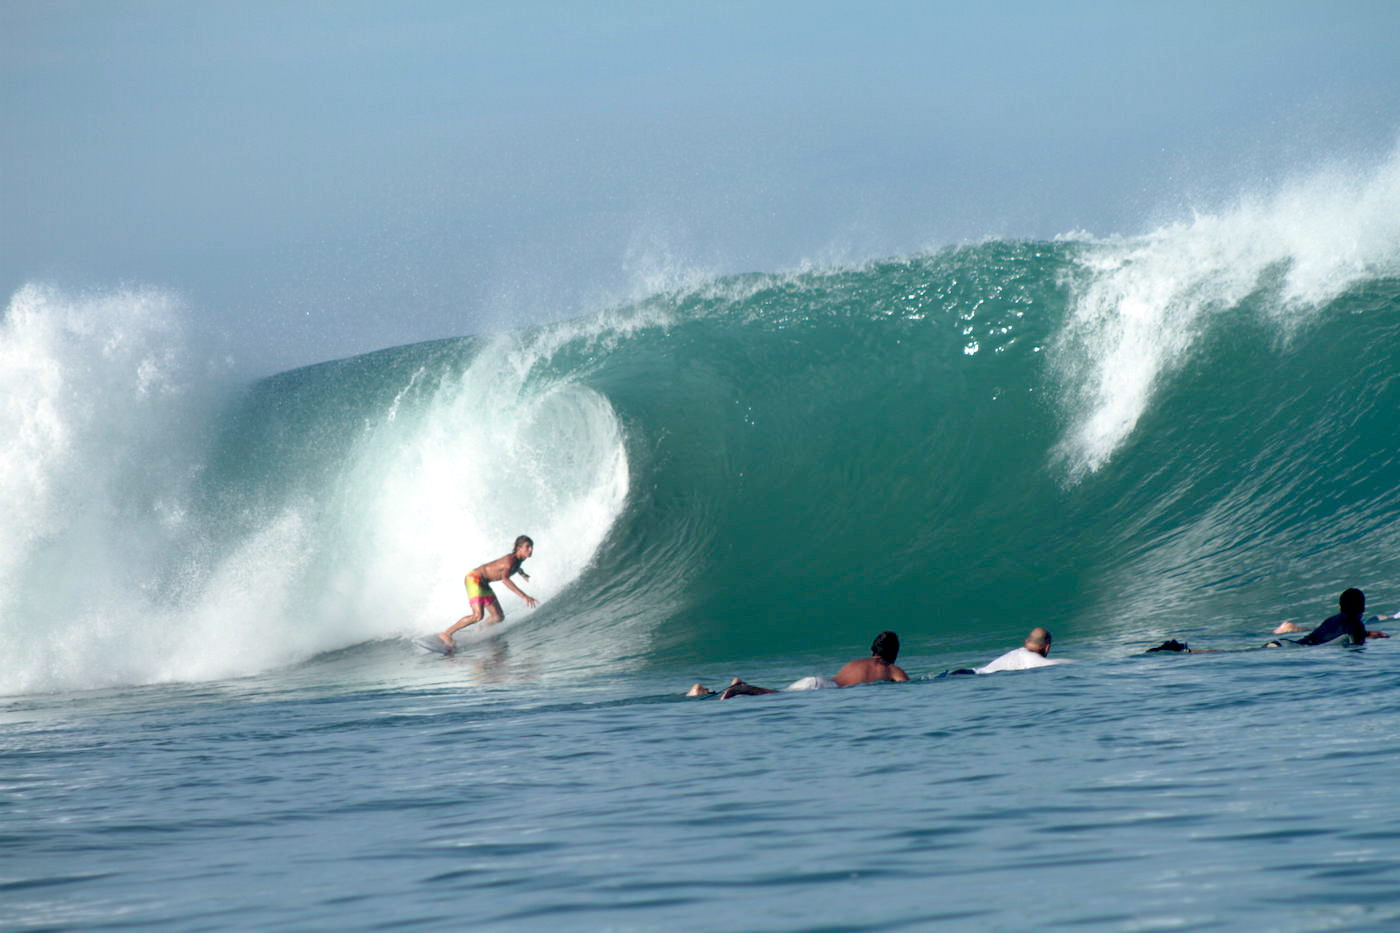 Nusa Dewata Surf Charter Boat Mentawai and Telos Islands Waves